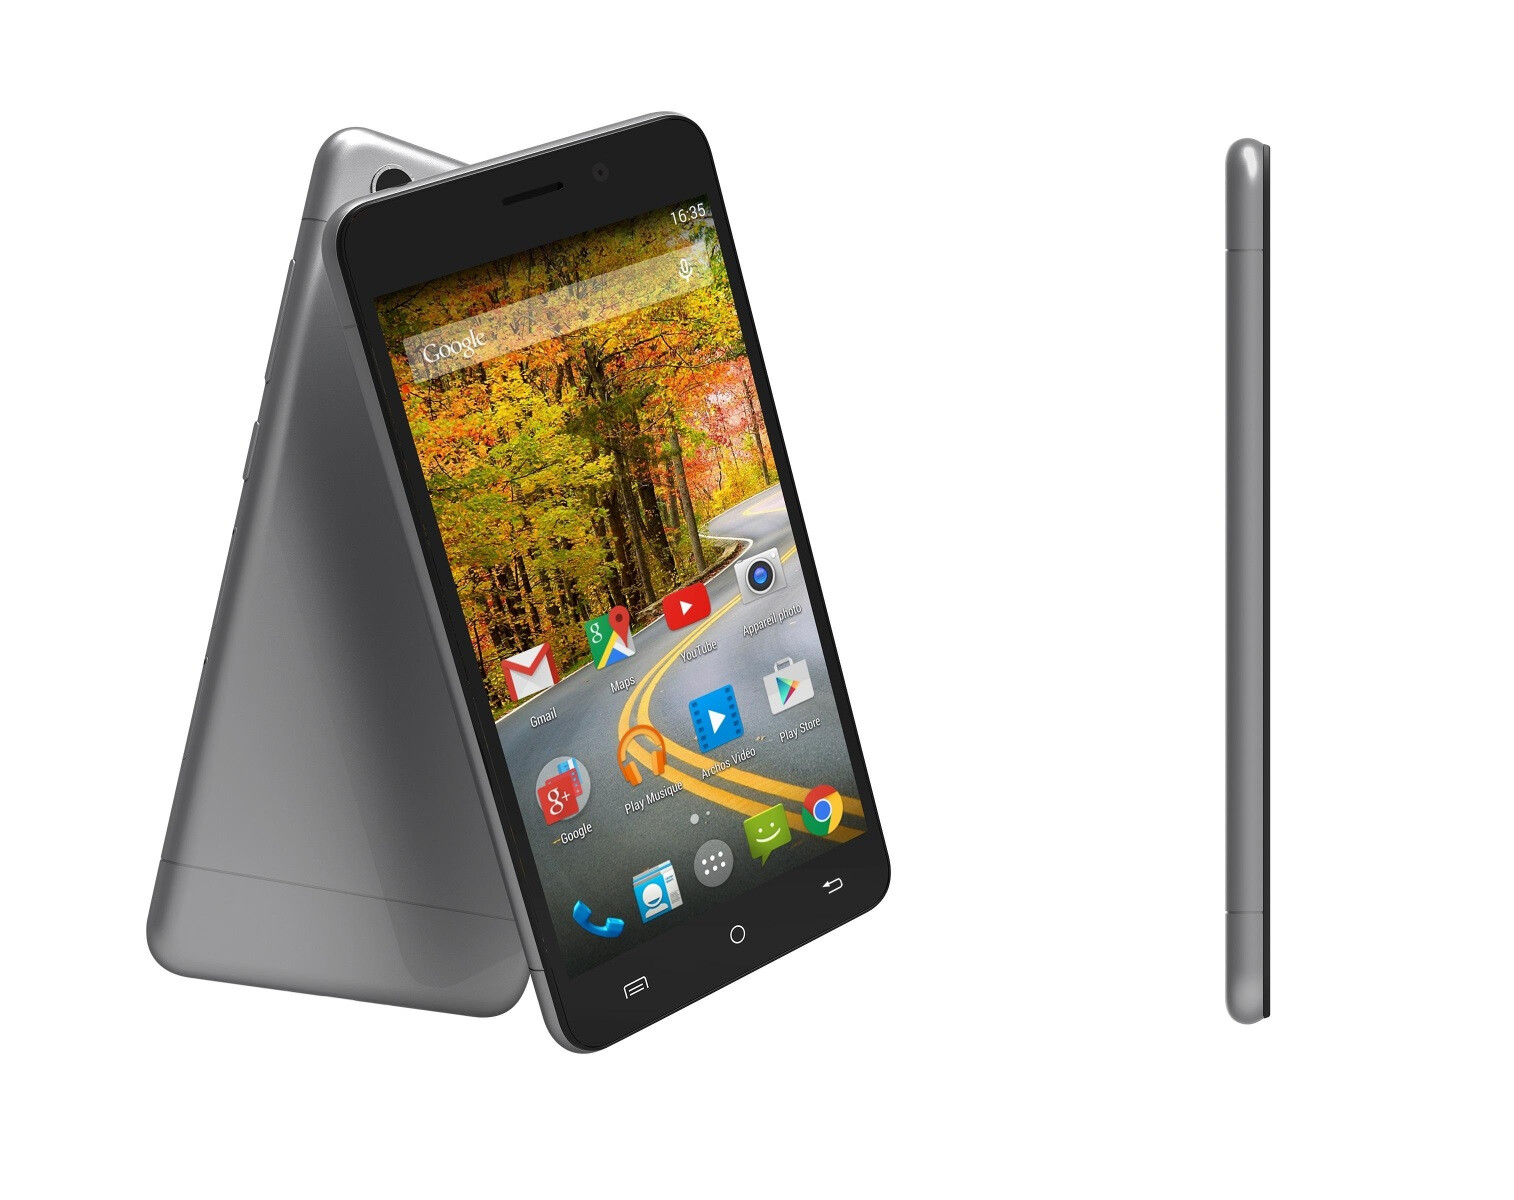 Phone New Android Smart Phones archos shows new budget android smartphones with big displays at mwc 2015